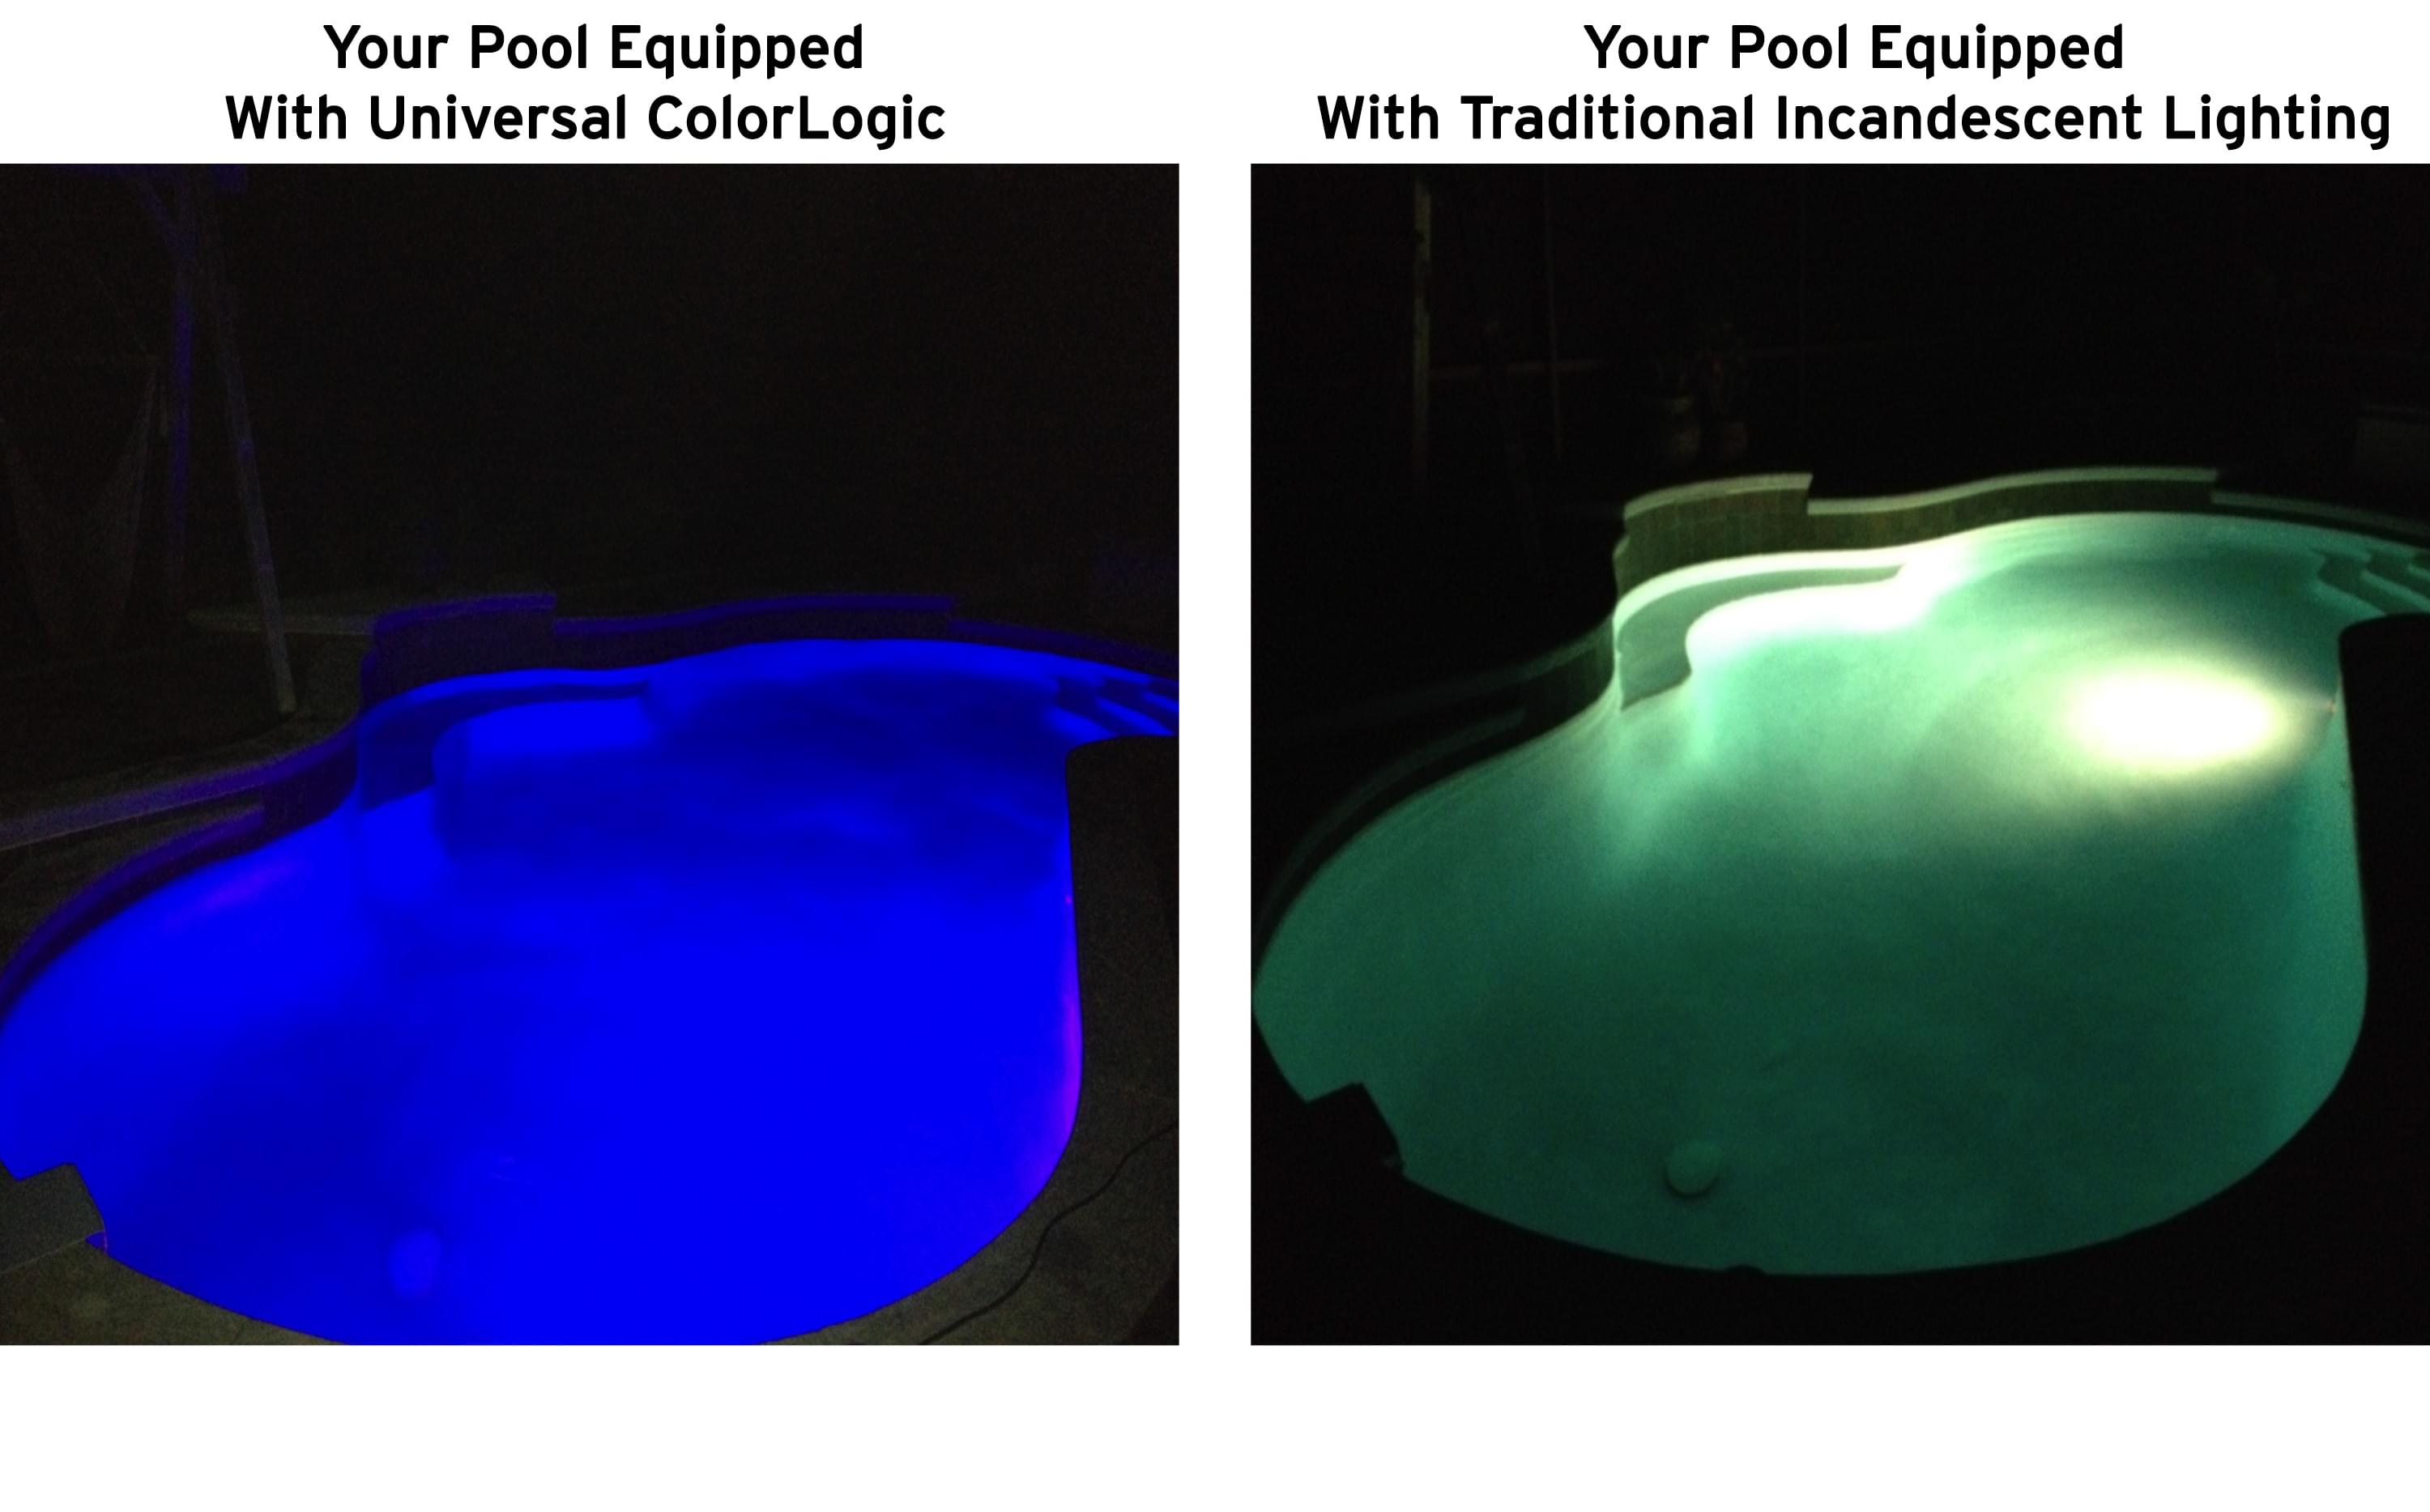 Free Shipping  sc 1 st  Pool Supplies Canada & Hayward Universal ColorLogic Return Light | Pool Supplies Canada